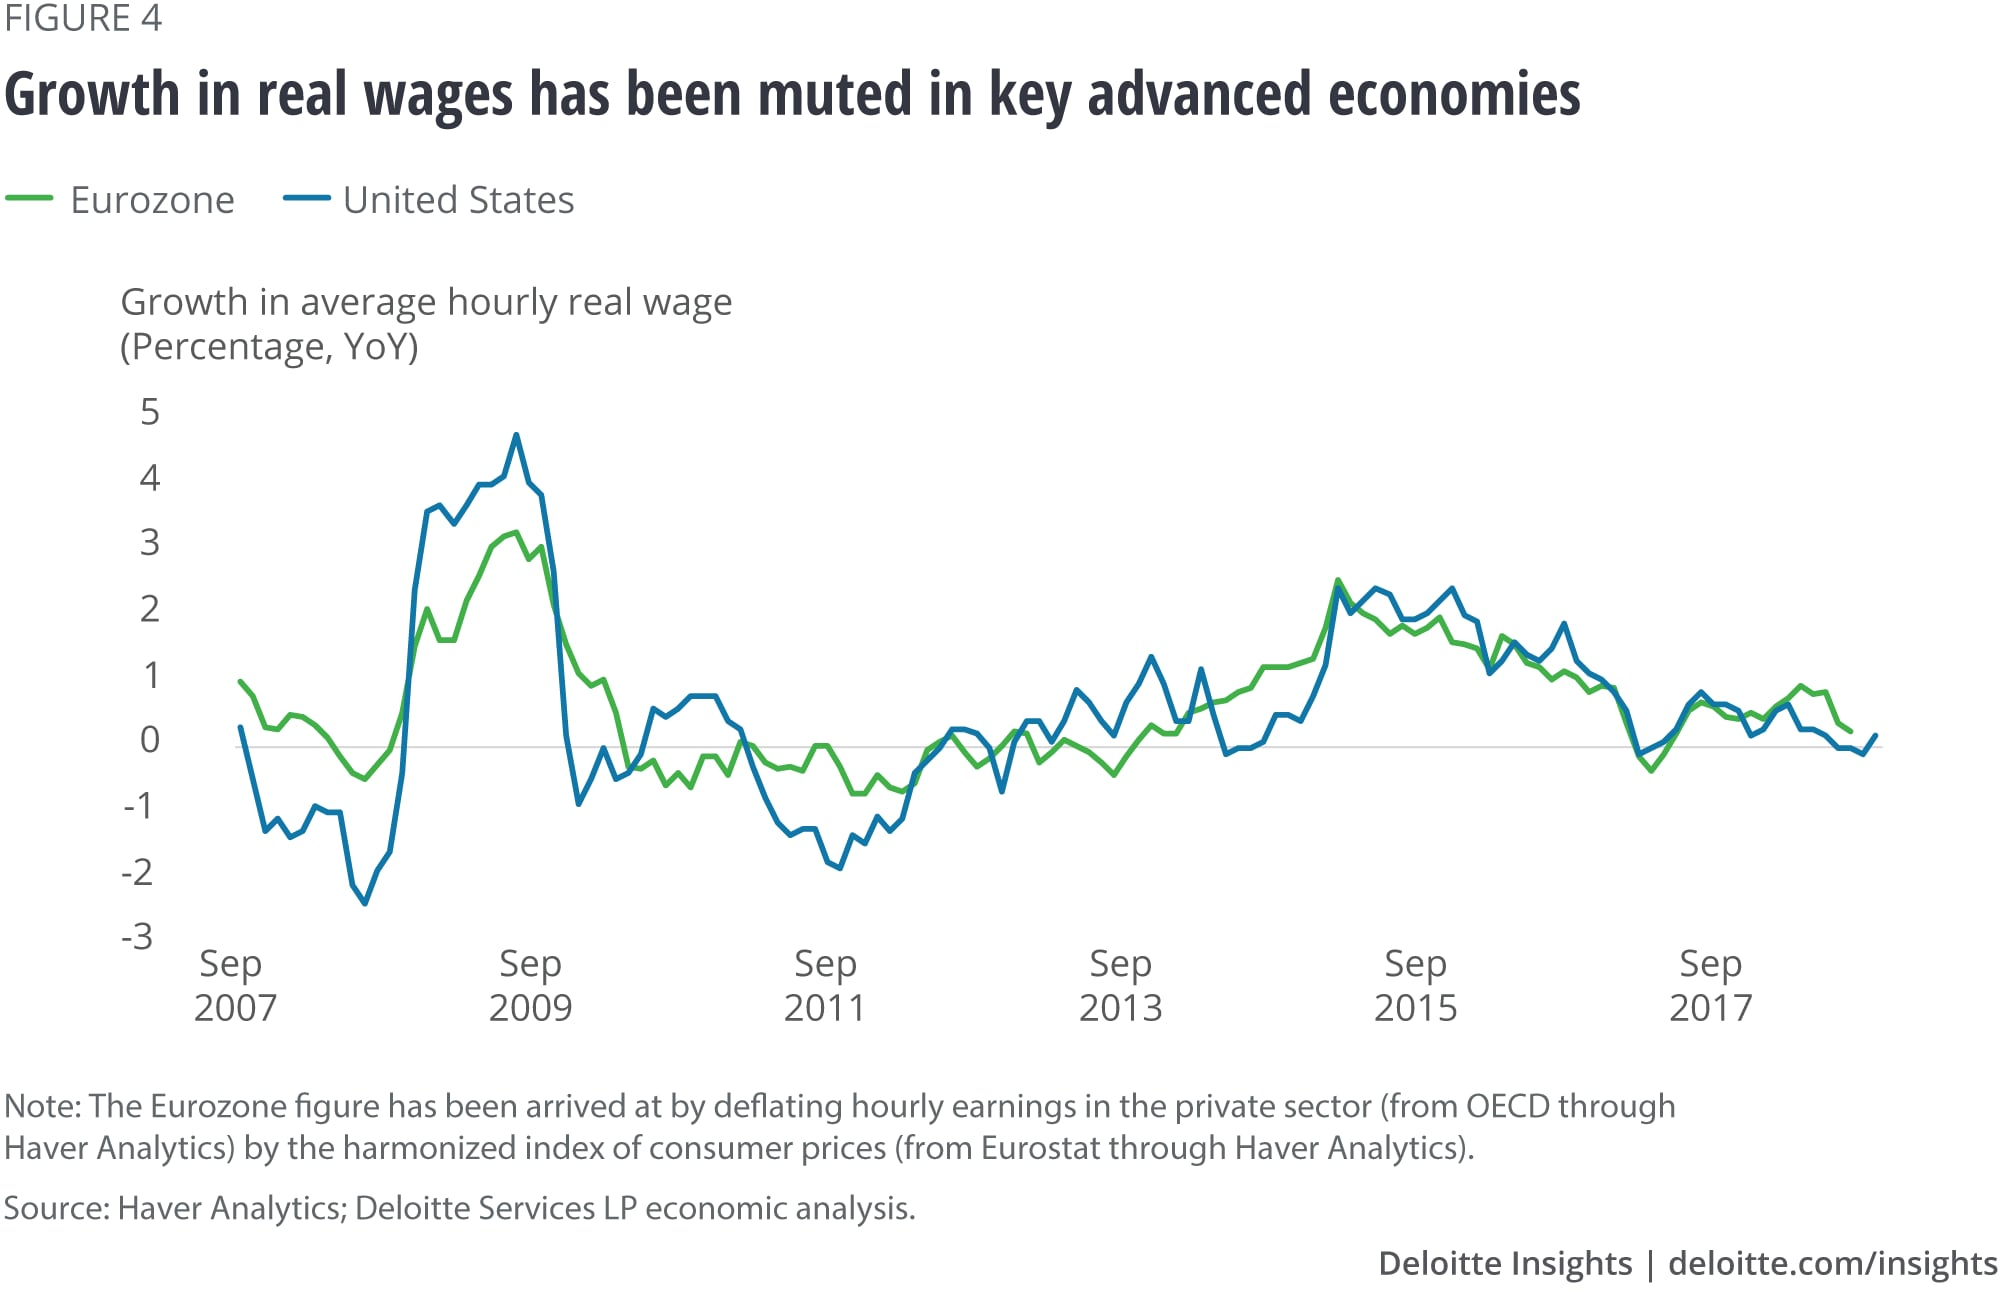 Growth in real wages has been muted in key advanced economies